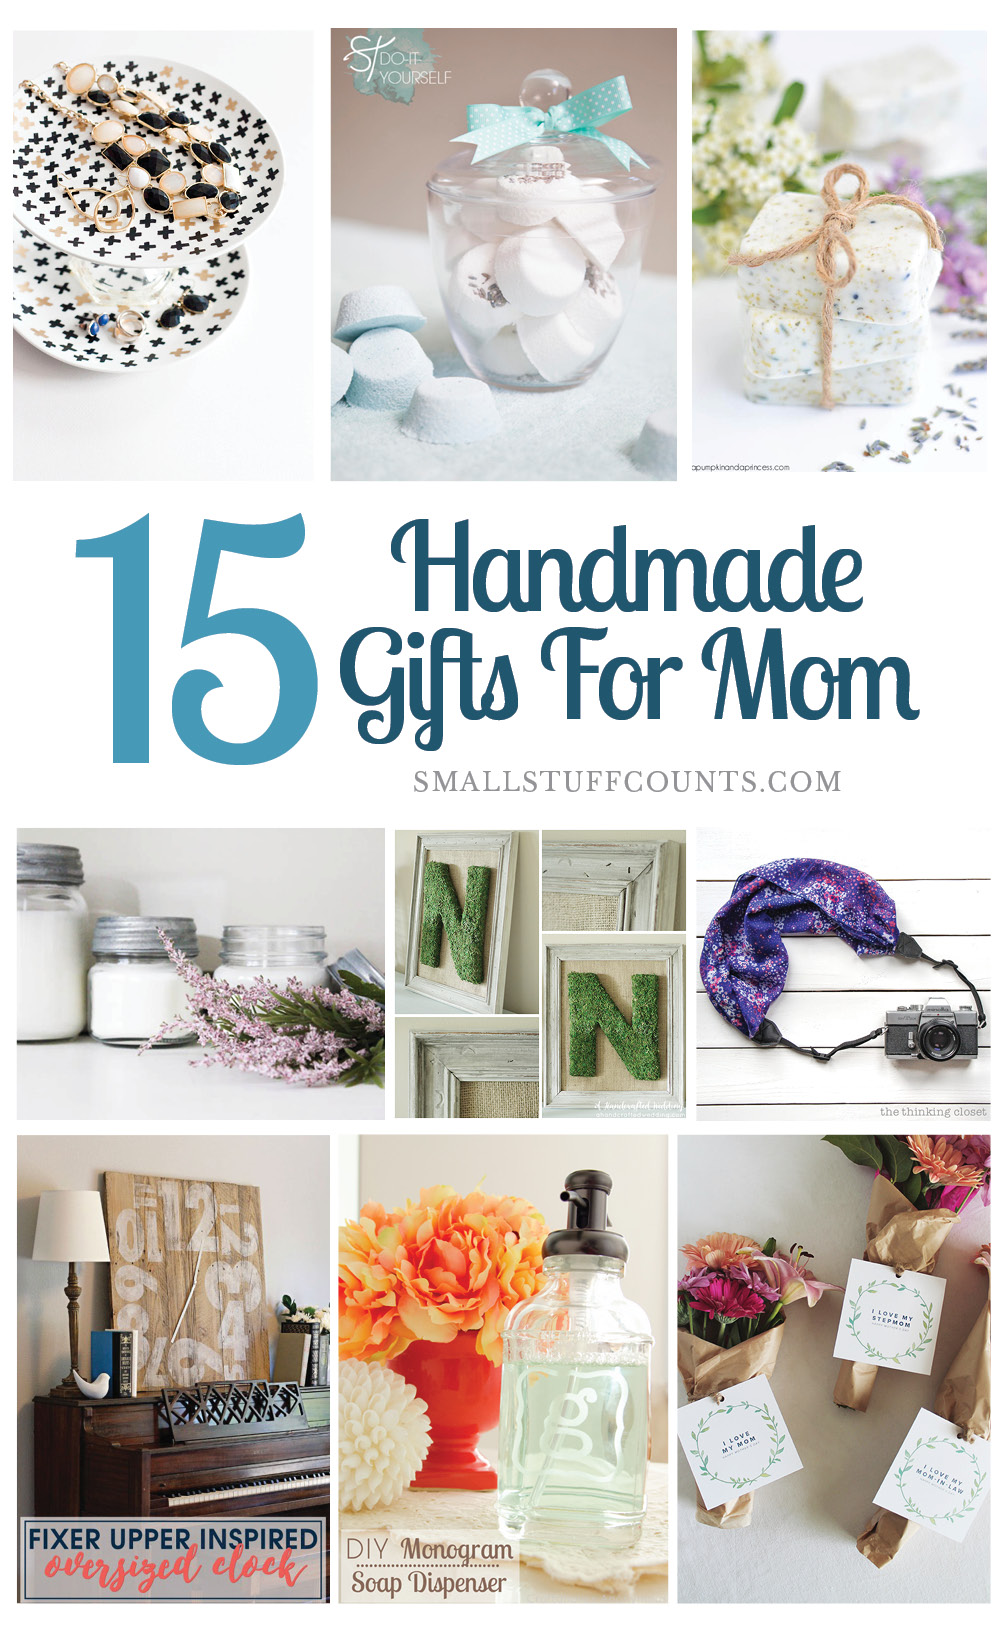 Beautiful diy gift ideas for mom Christmas ideas for mothers